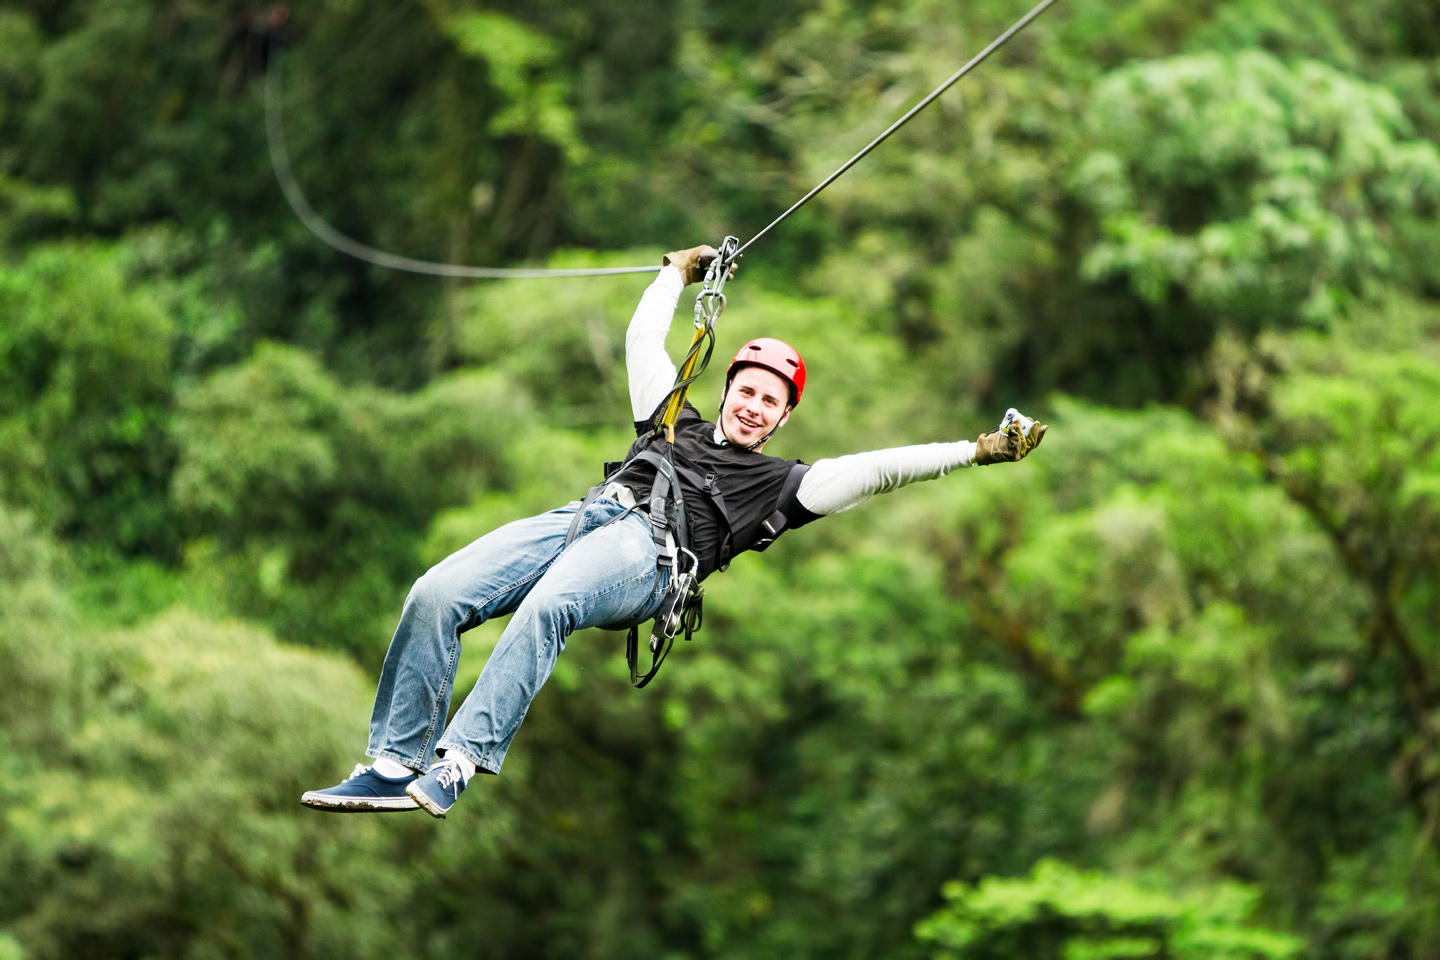 Tips On How Not To Look Like An Idiot While Ziplining